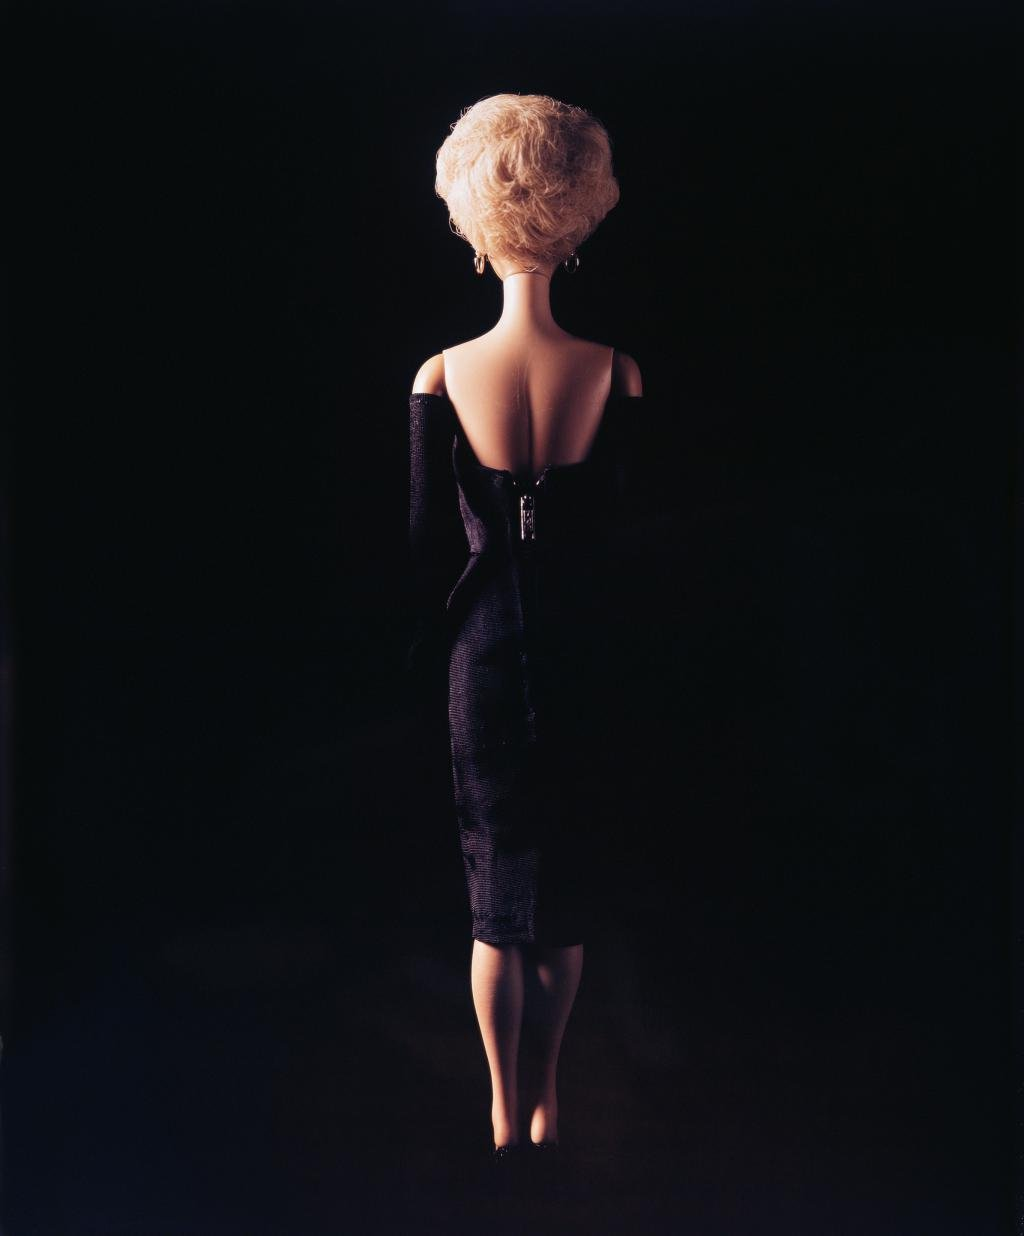 David Levinthal, Barbie 1